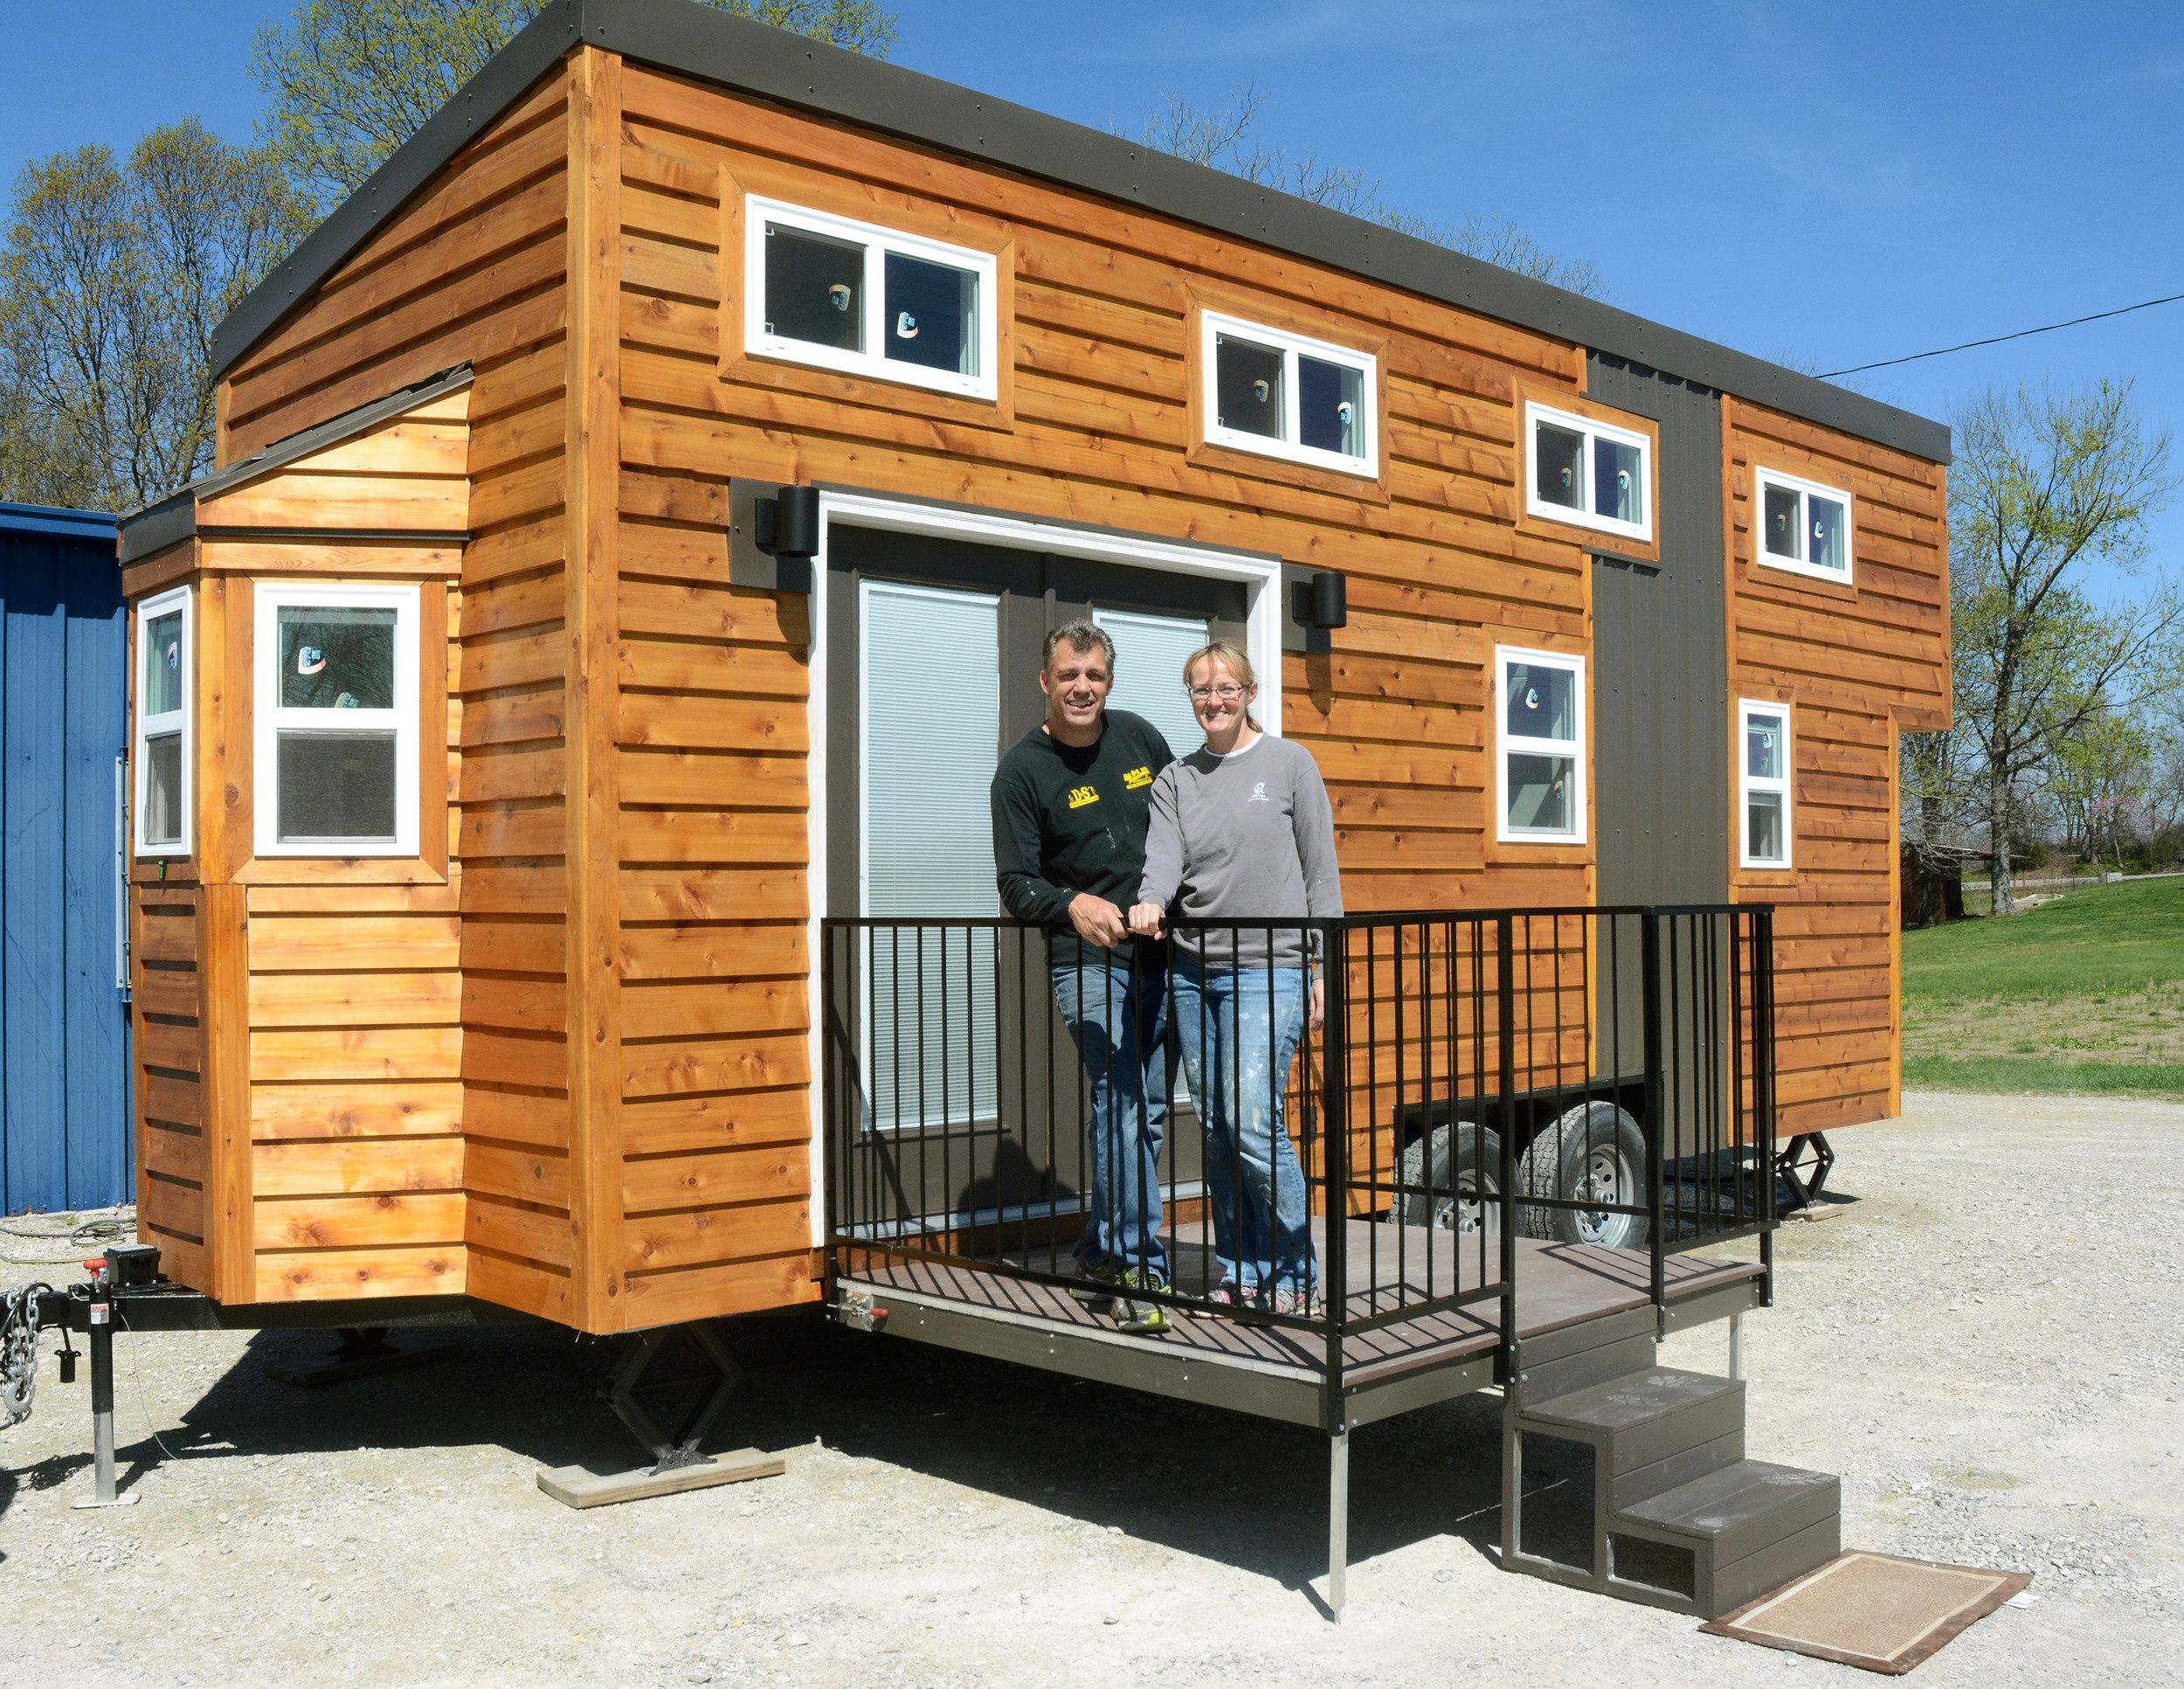 Don Duffield and Tanya Ward take a break from putting the finishing touches on their tiny house in preparation for the upcoming Tiny House Roadshow.